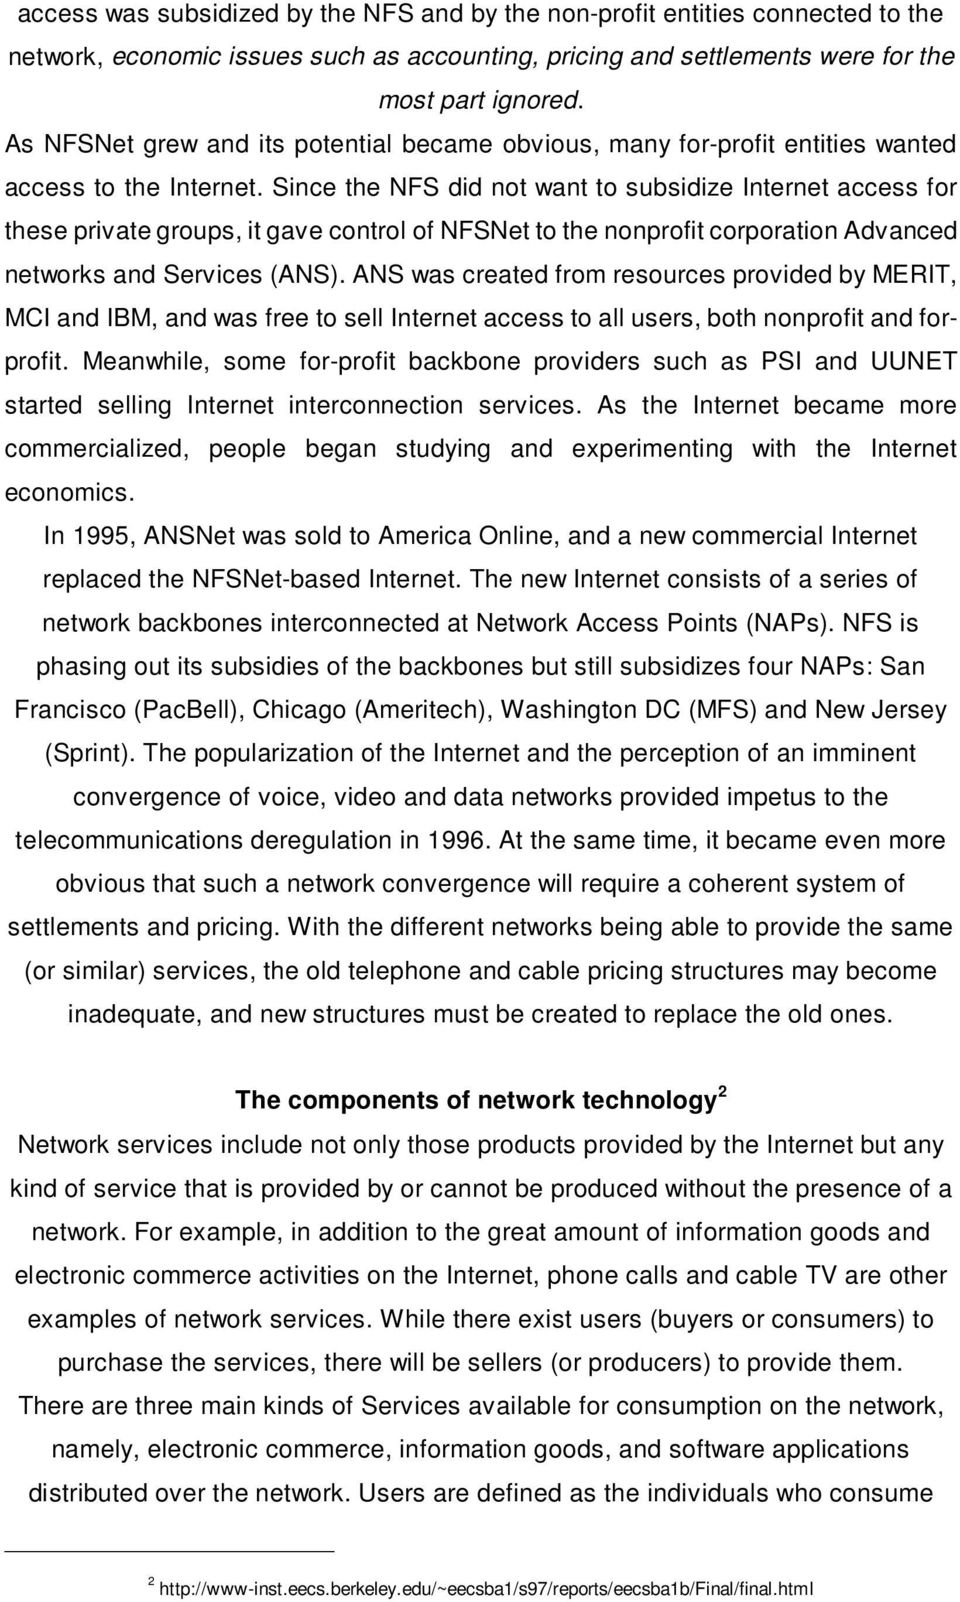 Since the NFS did not want to subsidize Internet access for these private groups, it gave control of NFSNet to the nonprofit corporation Advanced networks and Services (ANS).